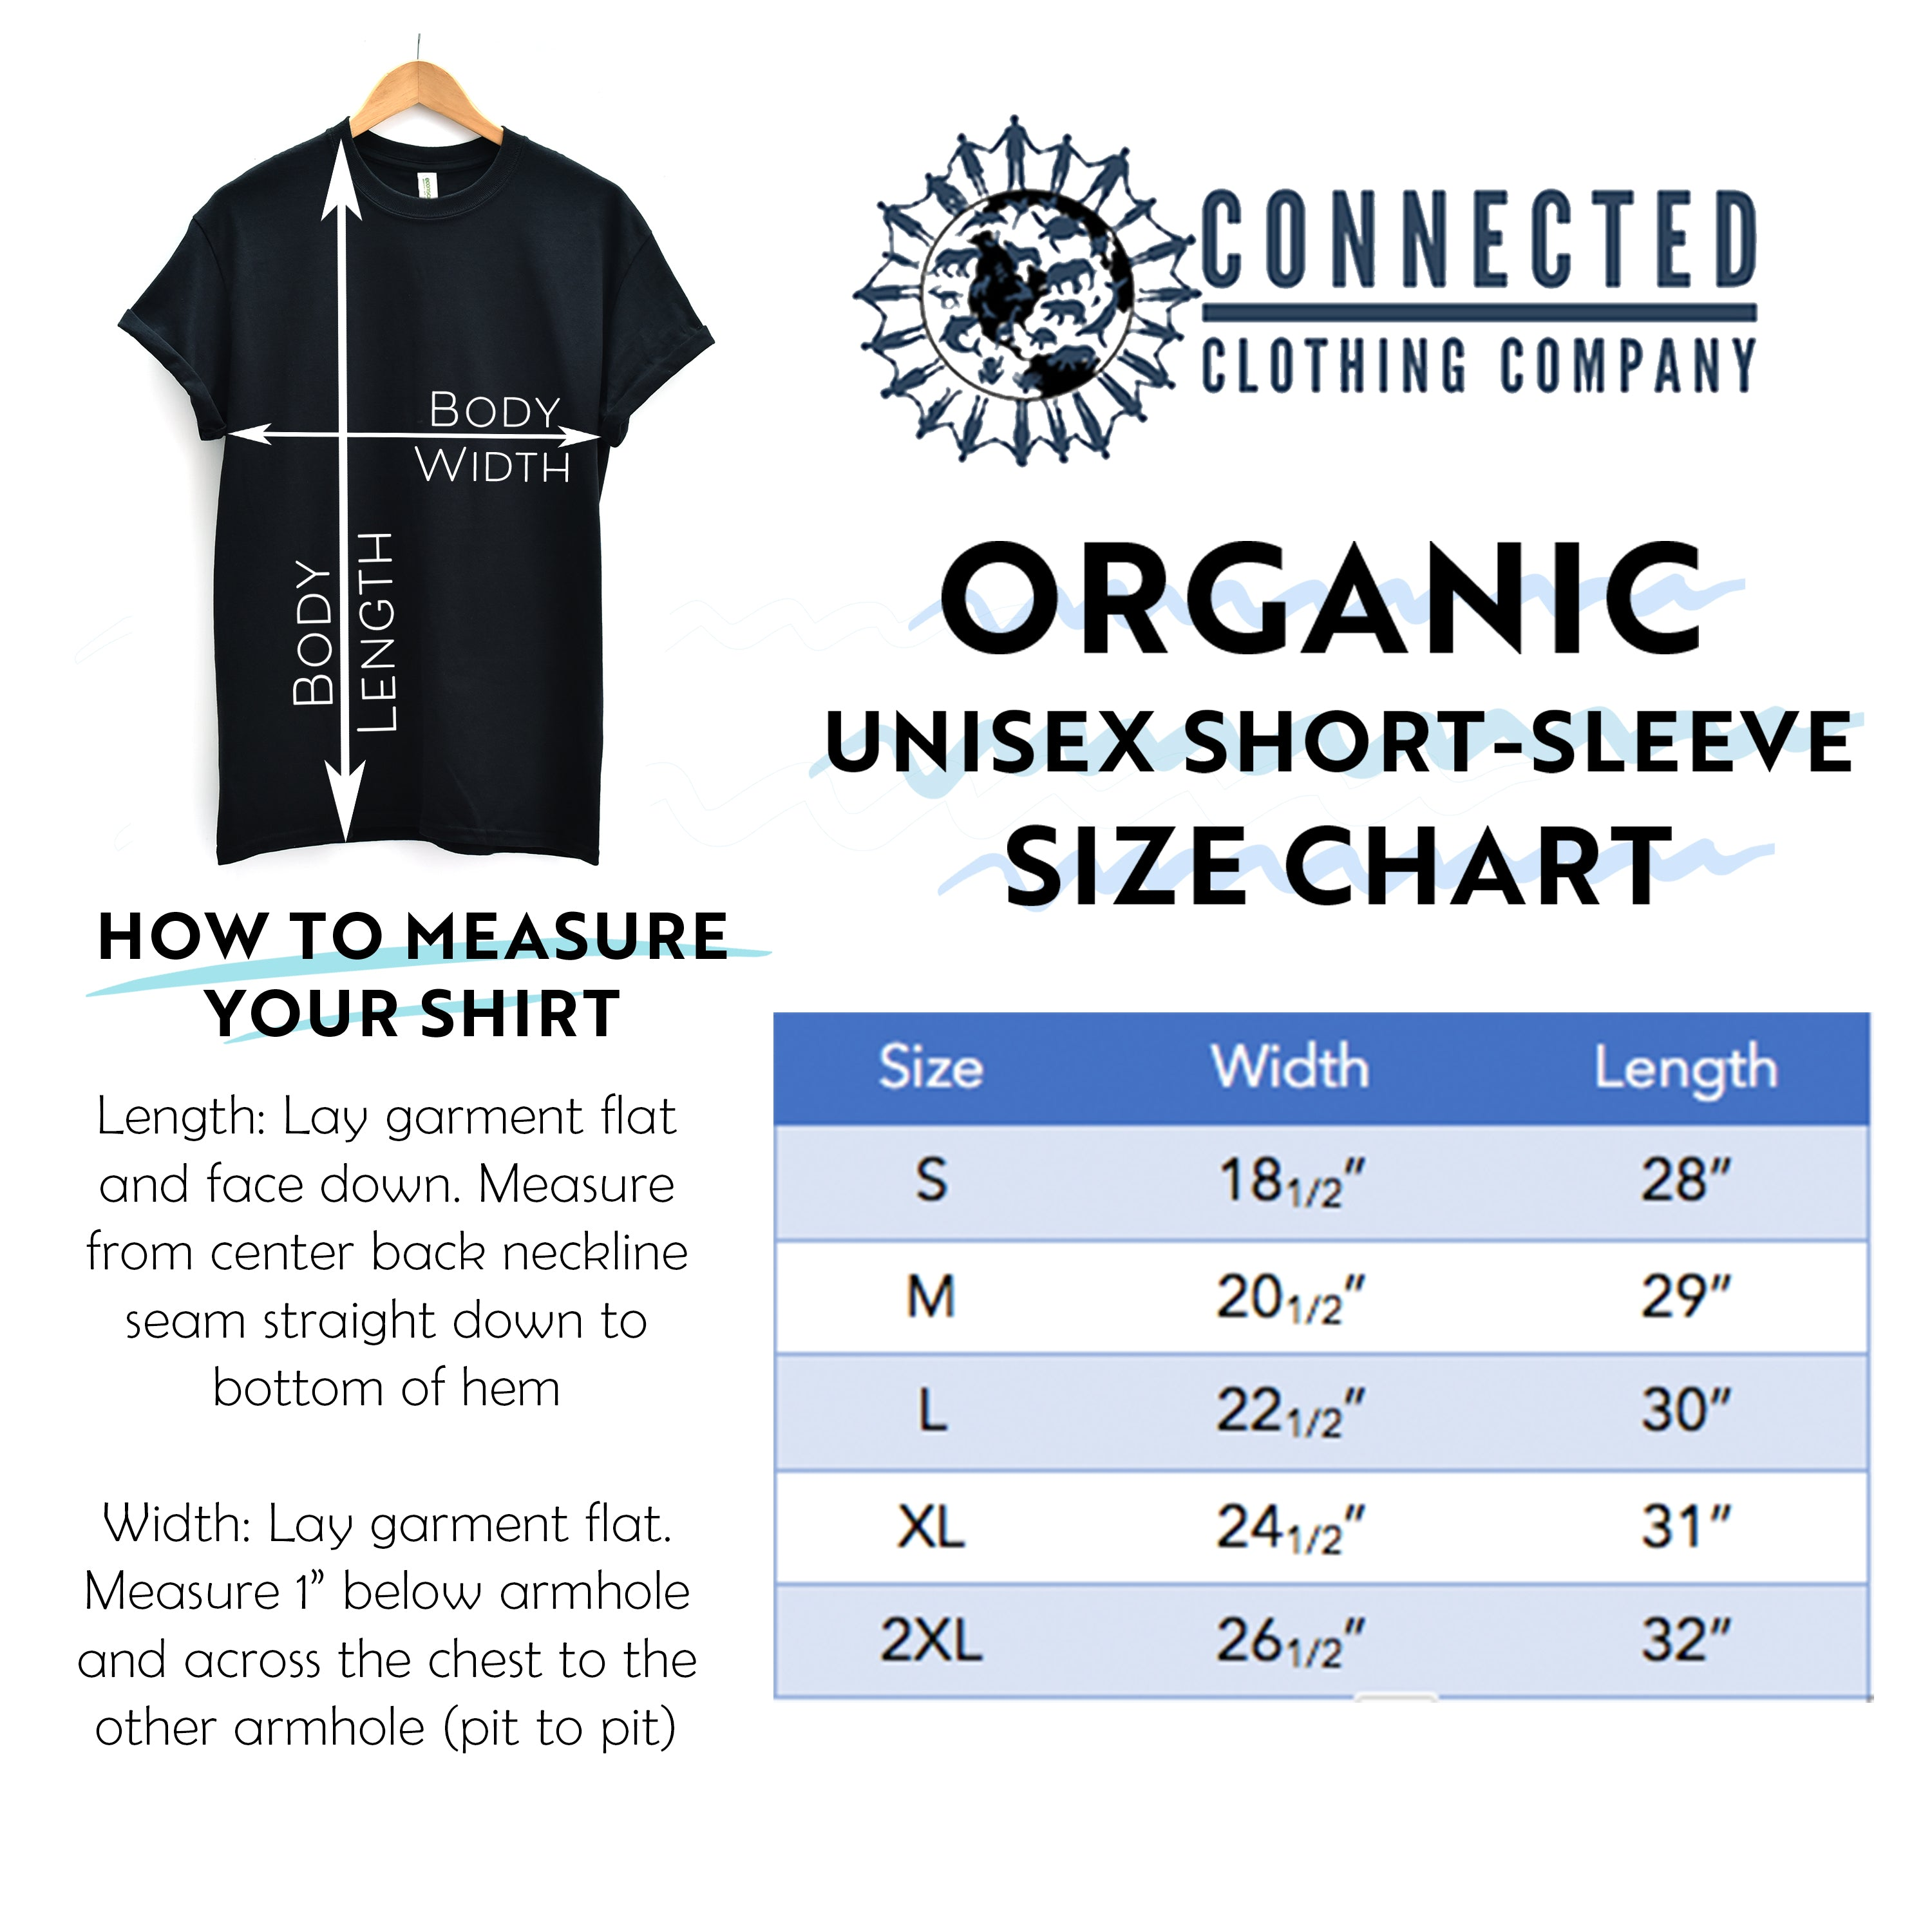 Organic Cotton Unisex Short-Sleeve Tee Size Chart - Connected Clothing Company - Ethically and Sustainably Made - 10% donated to Mission Blue ocean conservation